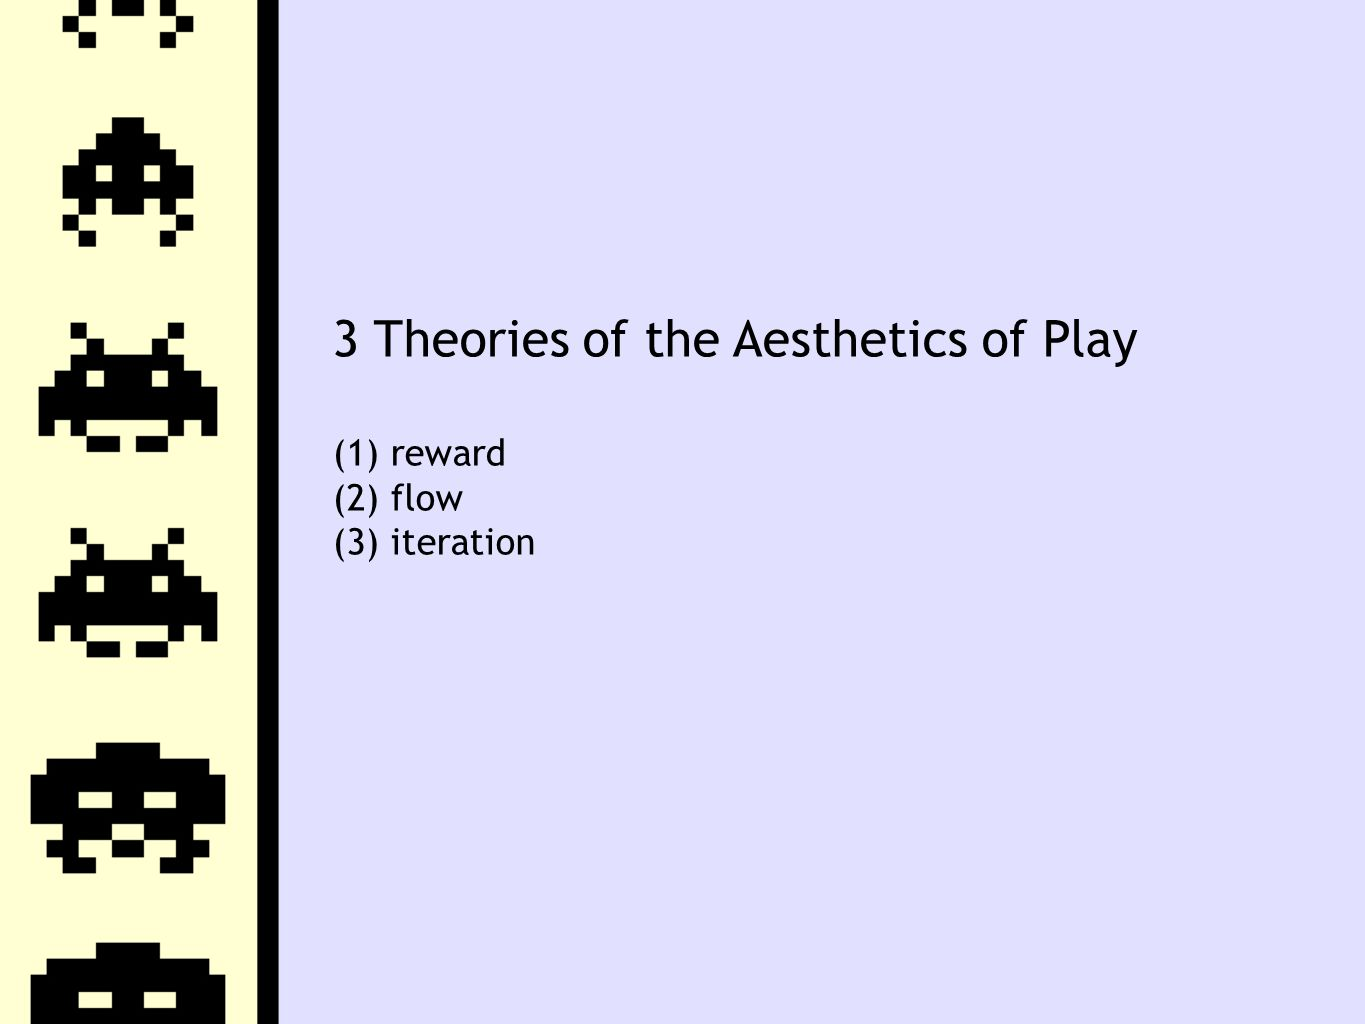 3 Theories of the Aesthetics of Play (1) reward (2) flow (3) iteration